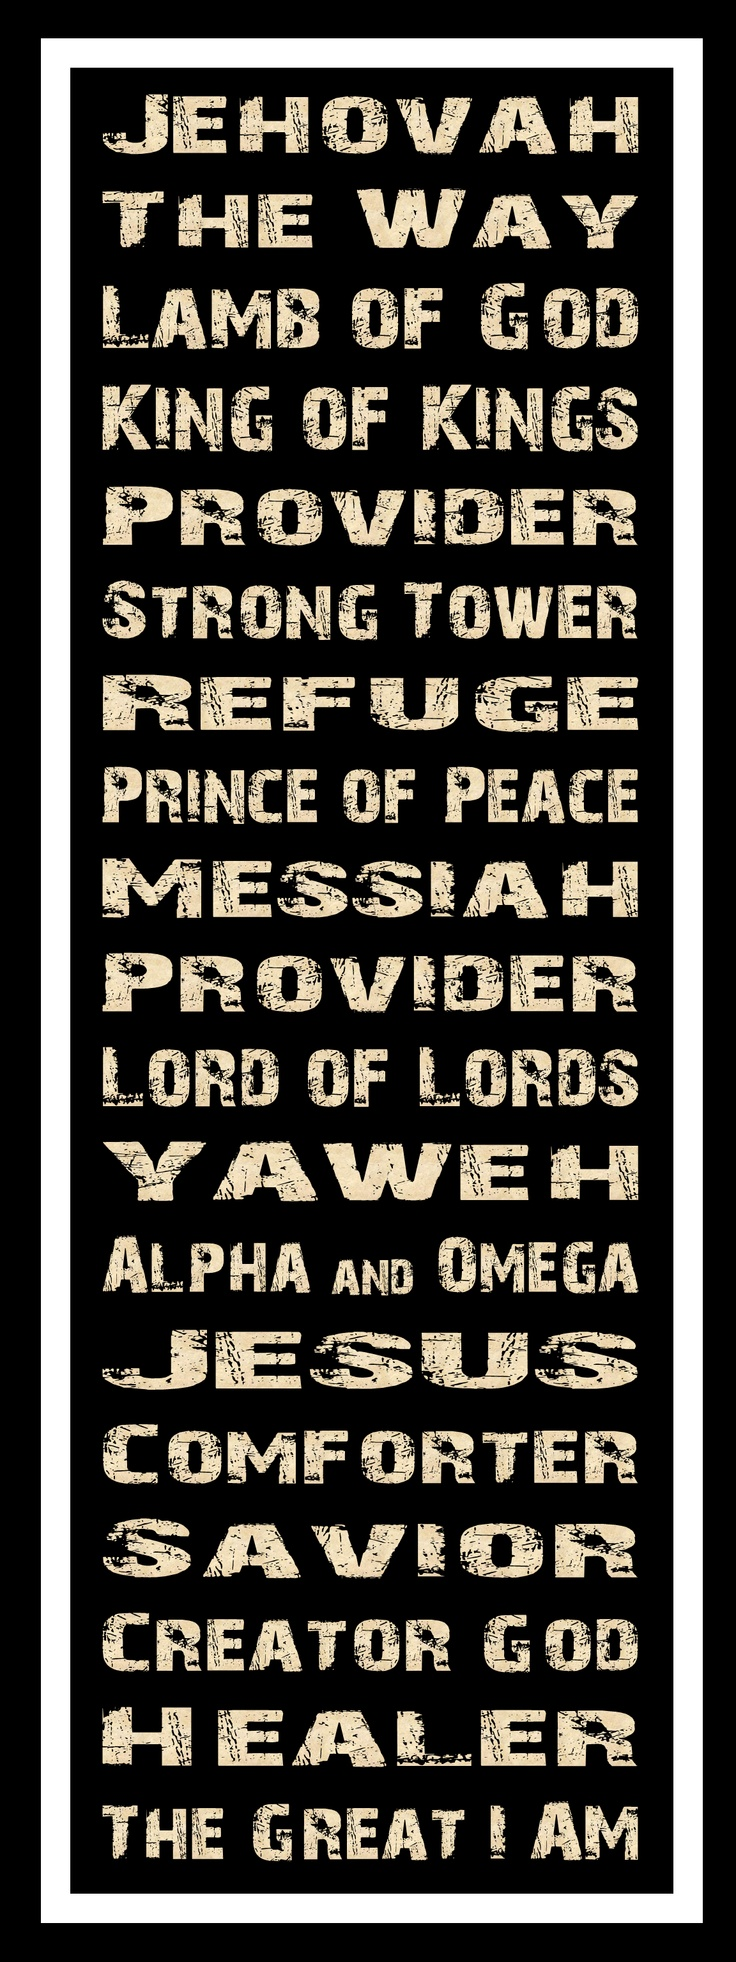 Jehovah, the Way, Lamb of God, King of Kings, Provider, Strong Tower, Refuge, Prince of Peace, Messiah, Provider, Lord of Lords, Yaweh, Alpha and Omega, Jesus, Comforter, Savior, Creator God, Healer, The Great I Am.